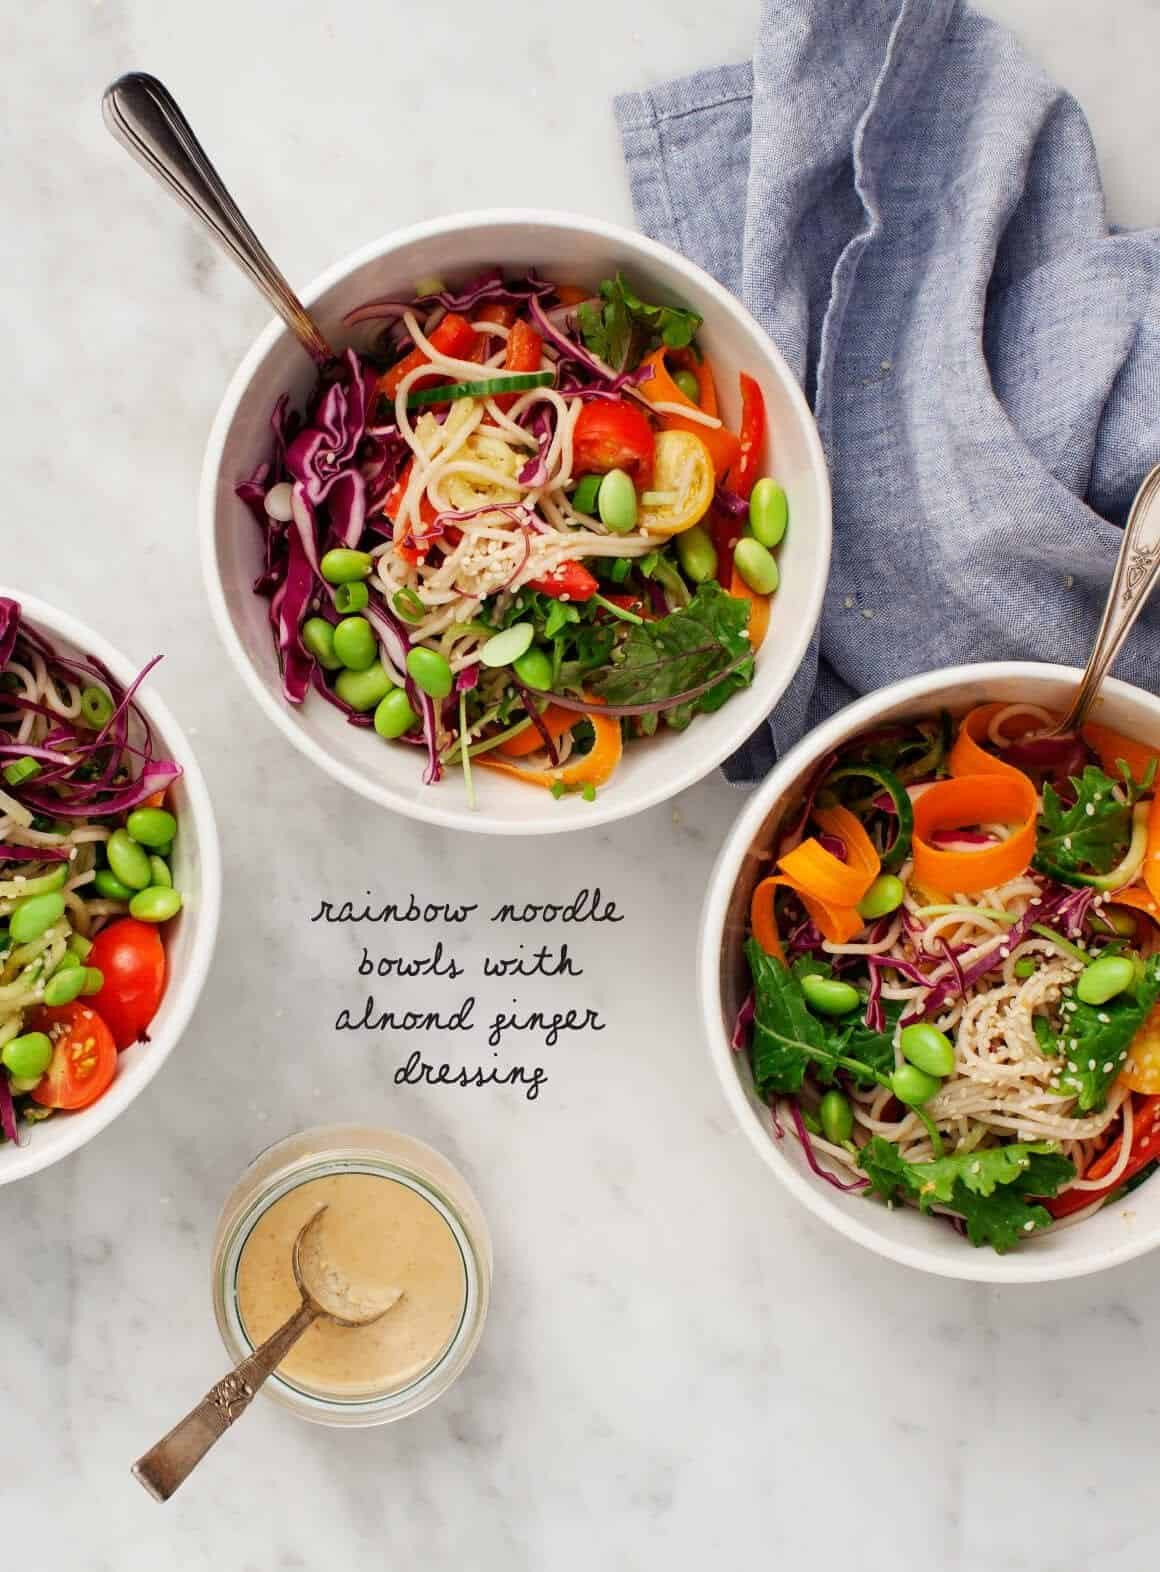 Rainbow Noodle Bowls w/ Almond Dressing